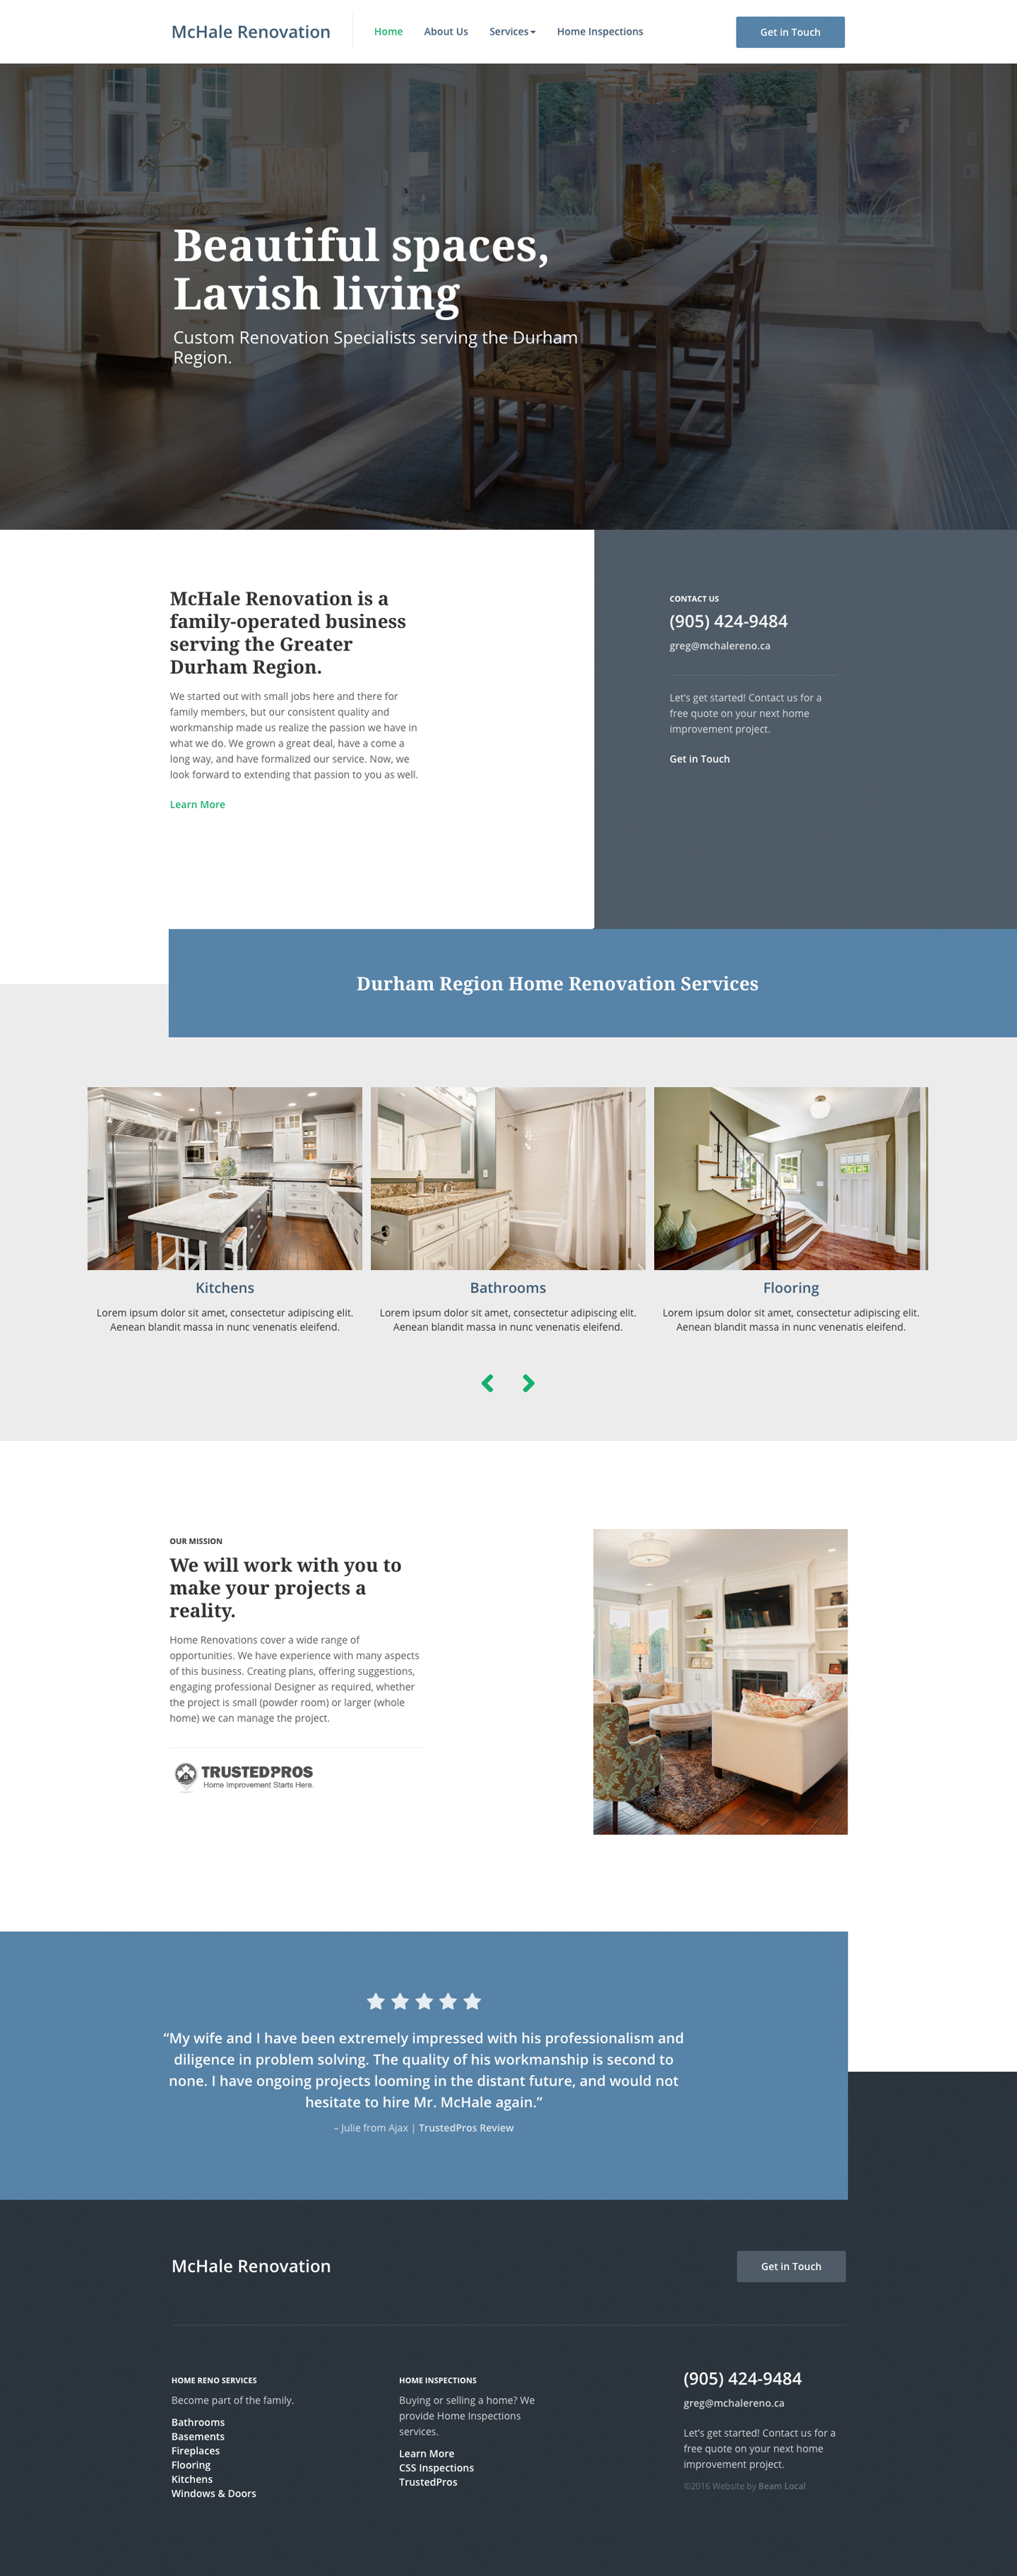 Are these the 10 Best Contractor Website Designs for 2016?